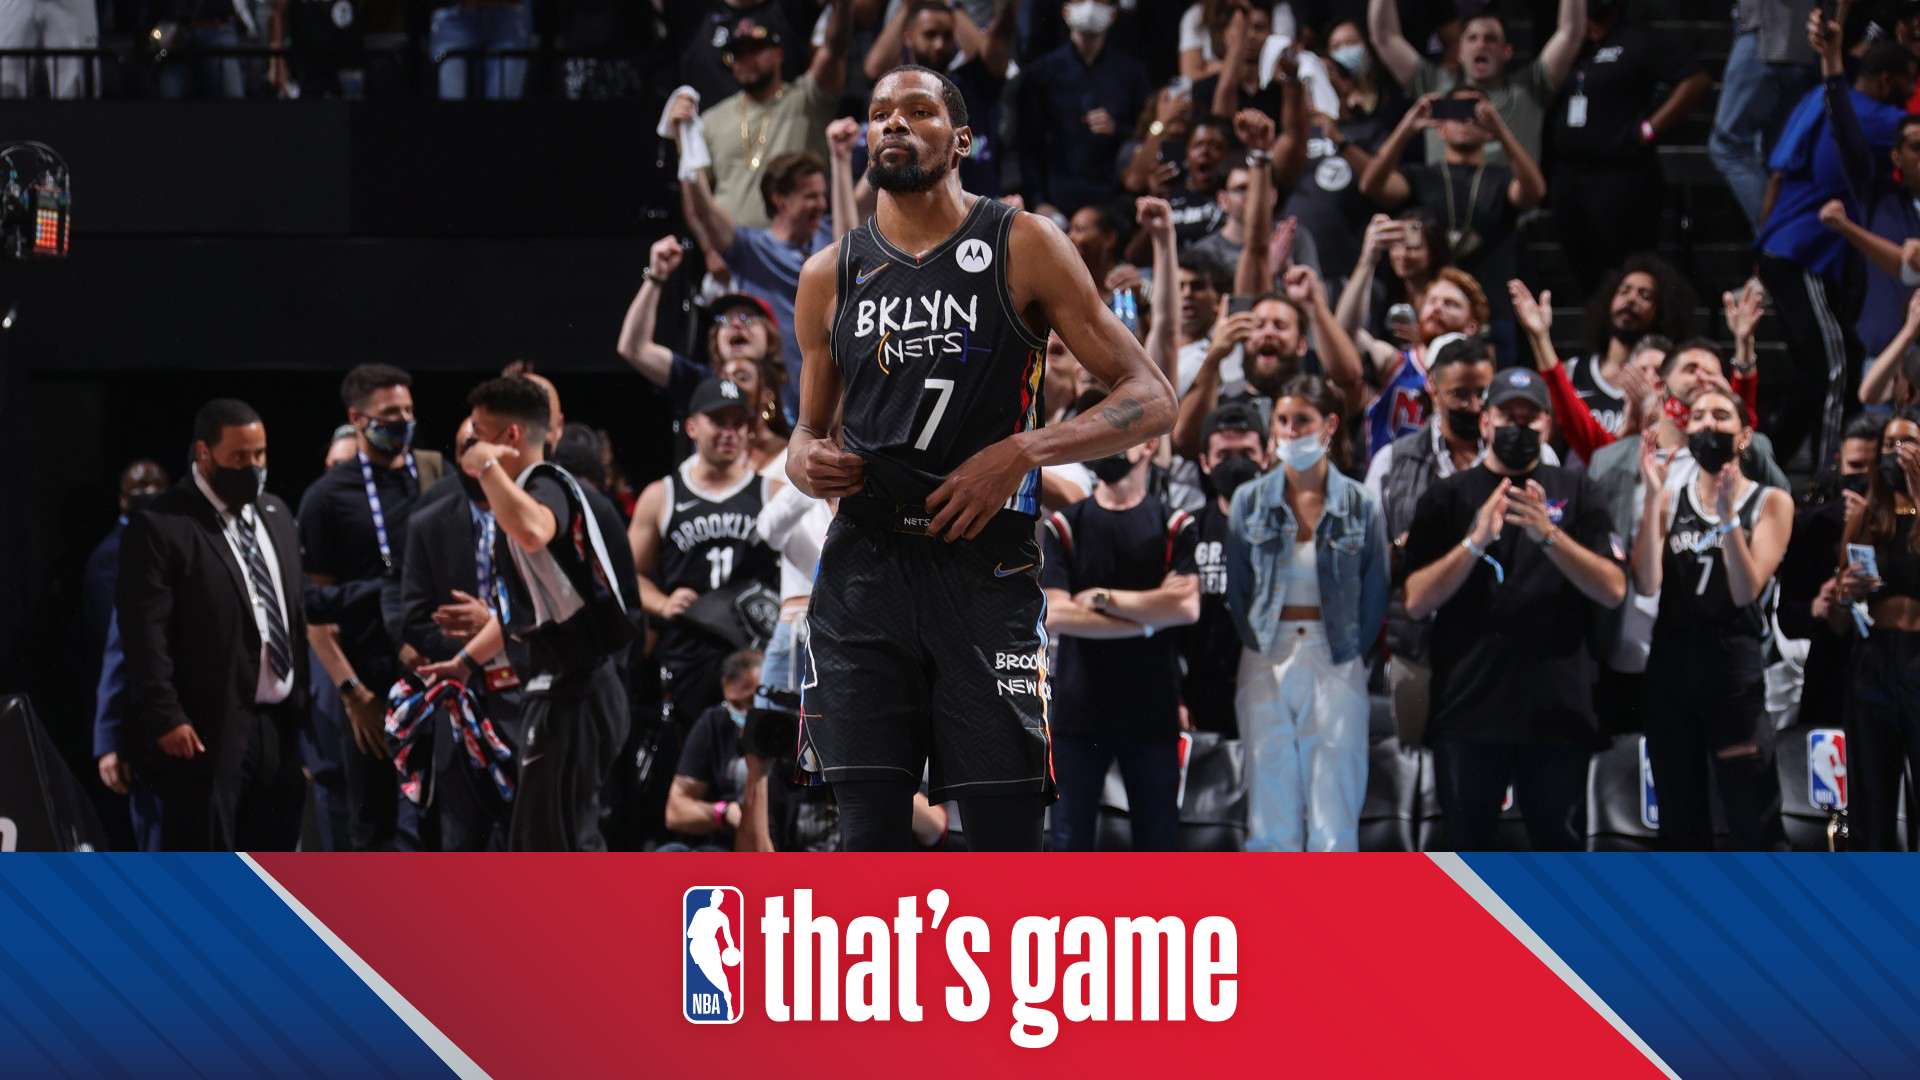 Kevin Durant delivers historic 49-point performance in Game 5